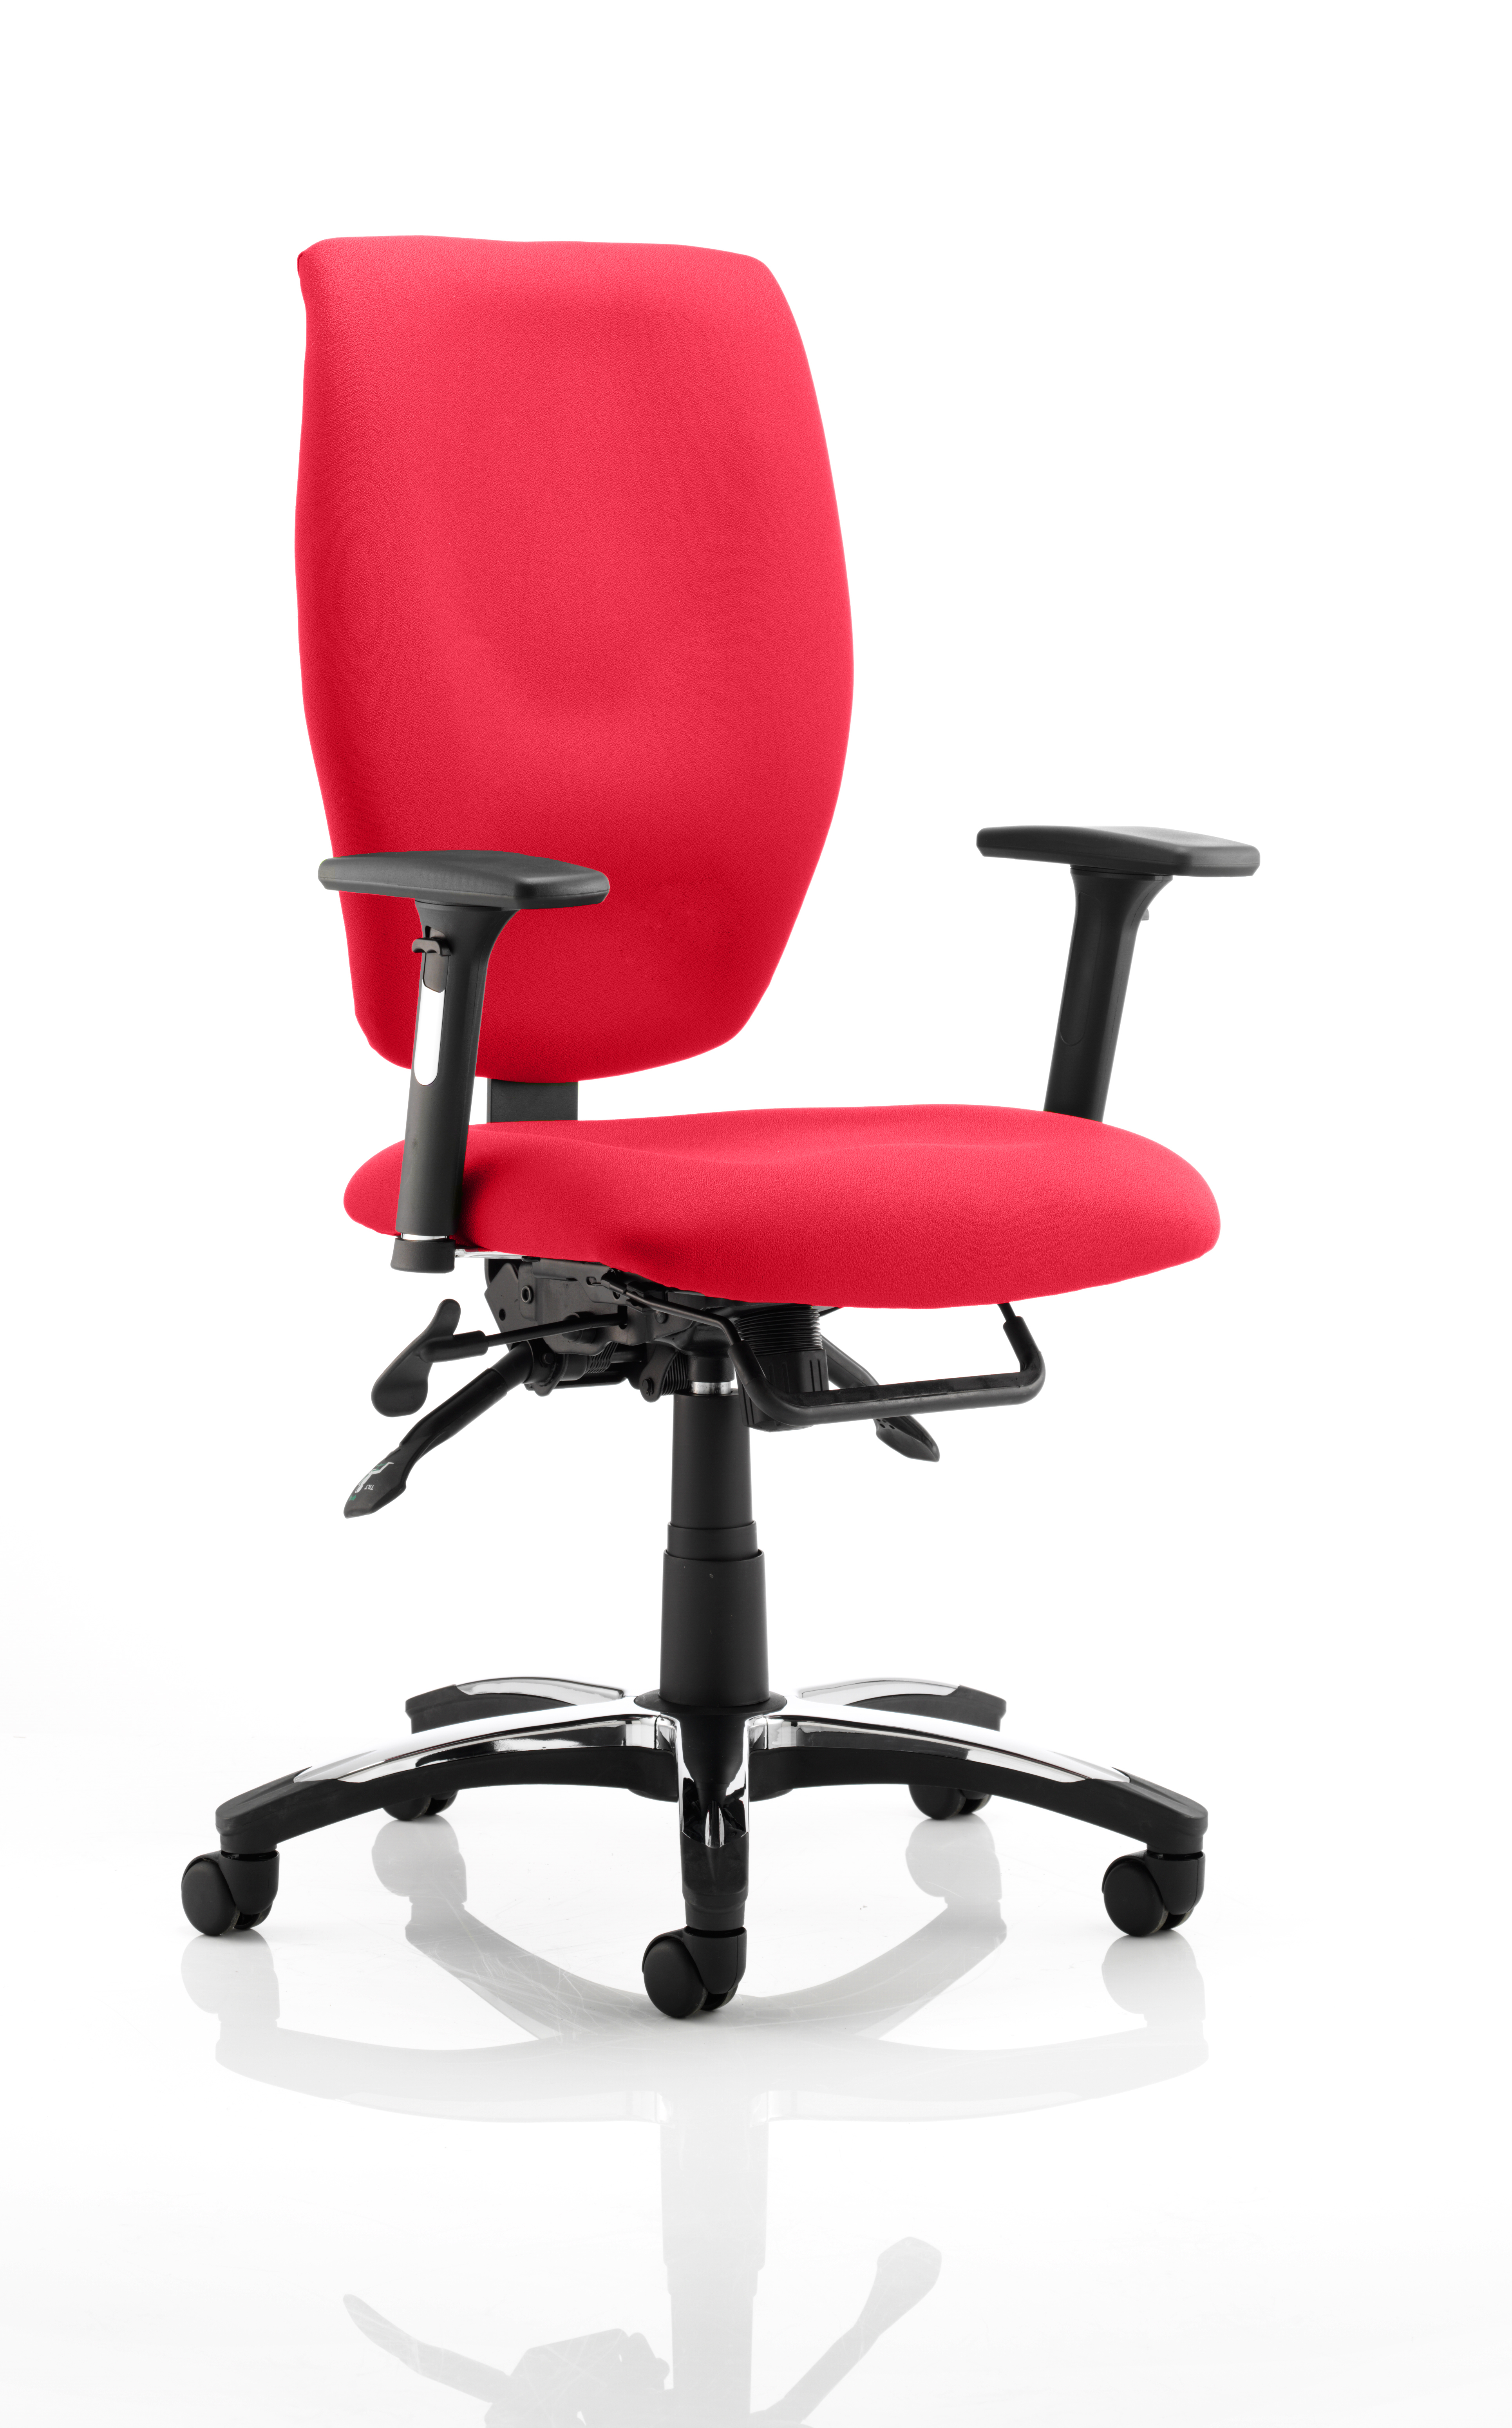 Sierra Executive Chair Black Fabric With Arms In Bergamot Cherry